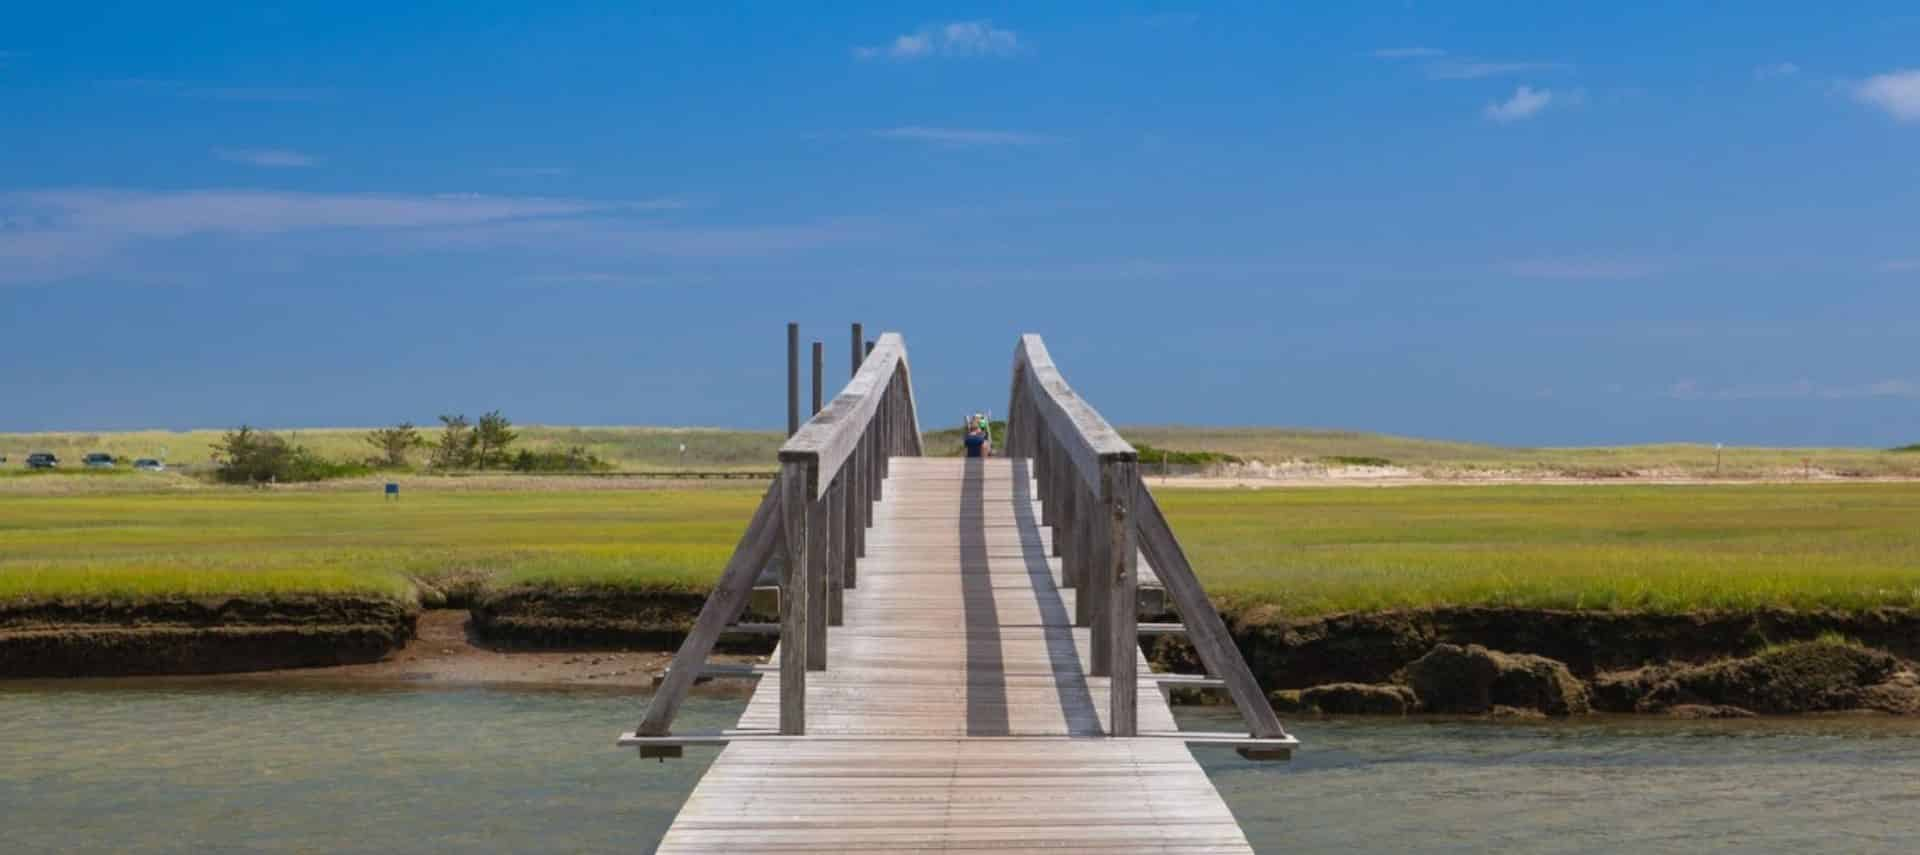 Long weathered wooden dock leading from parking area to the water surrounded by green grass